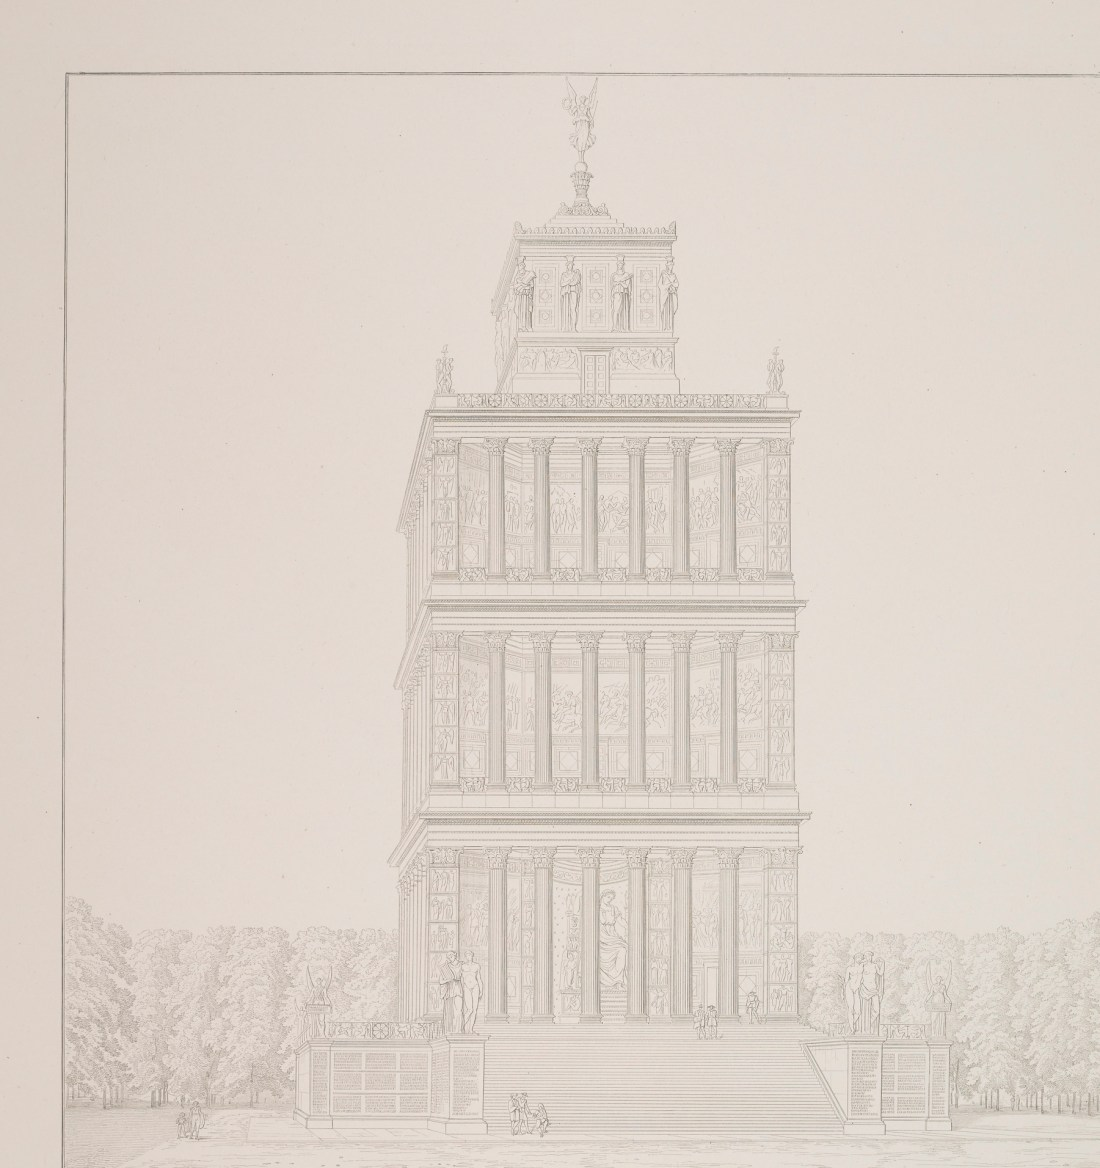 perspective-view-plans-details-plate-168-of-monume